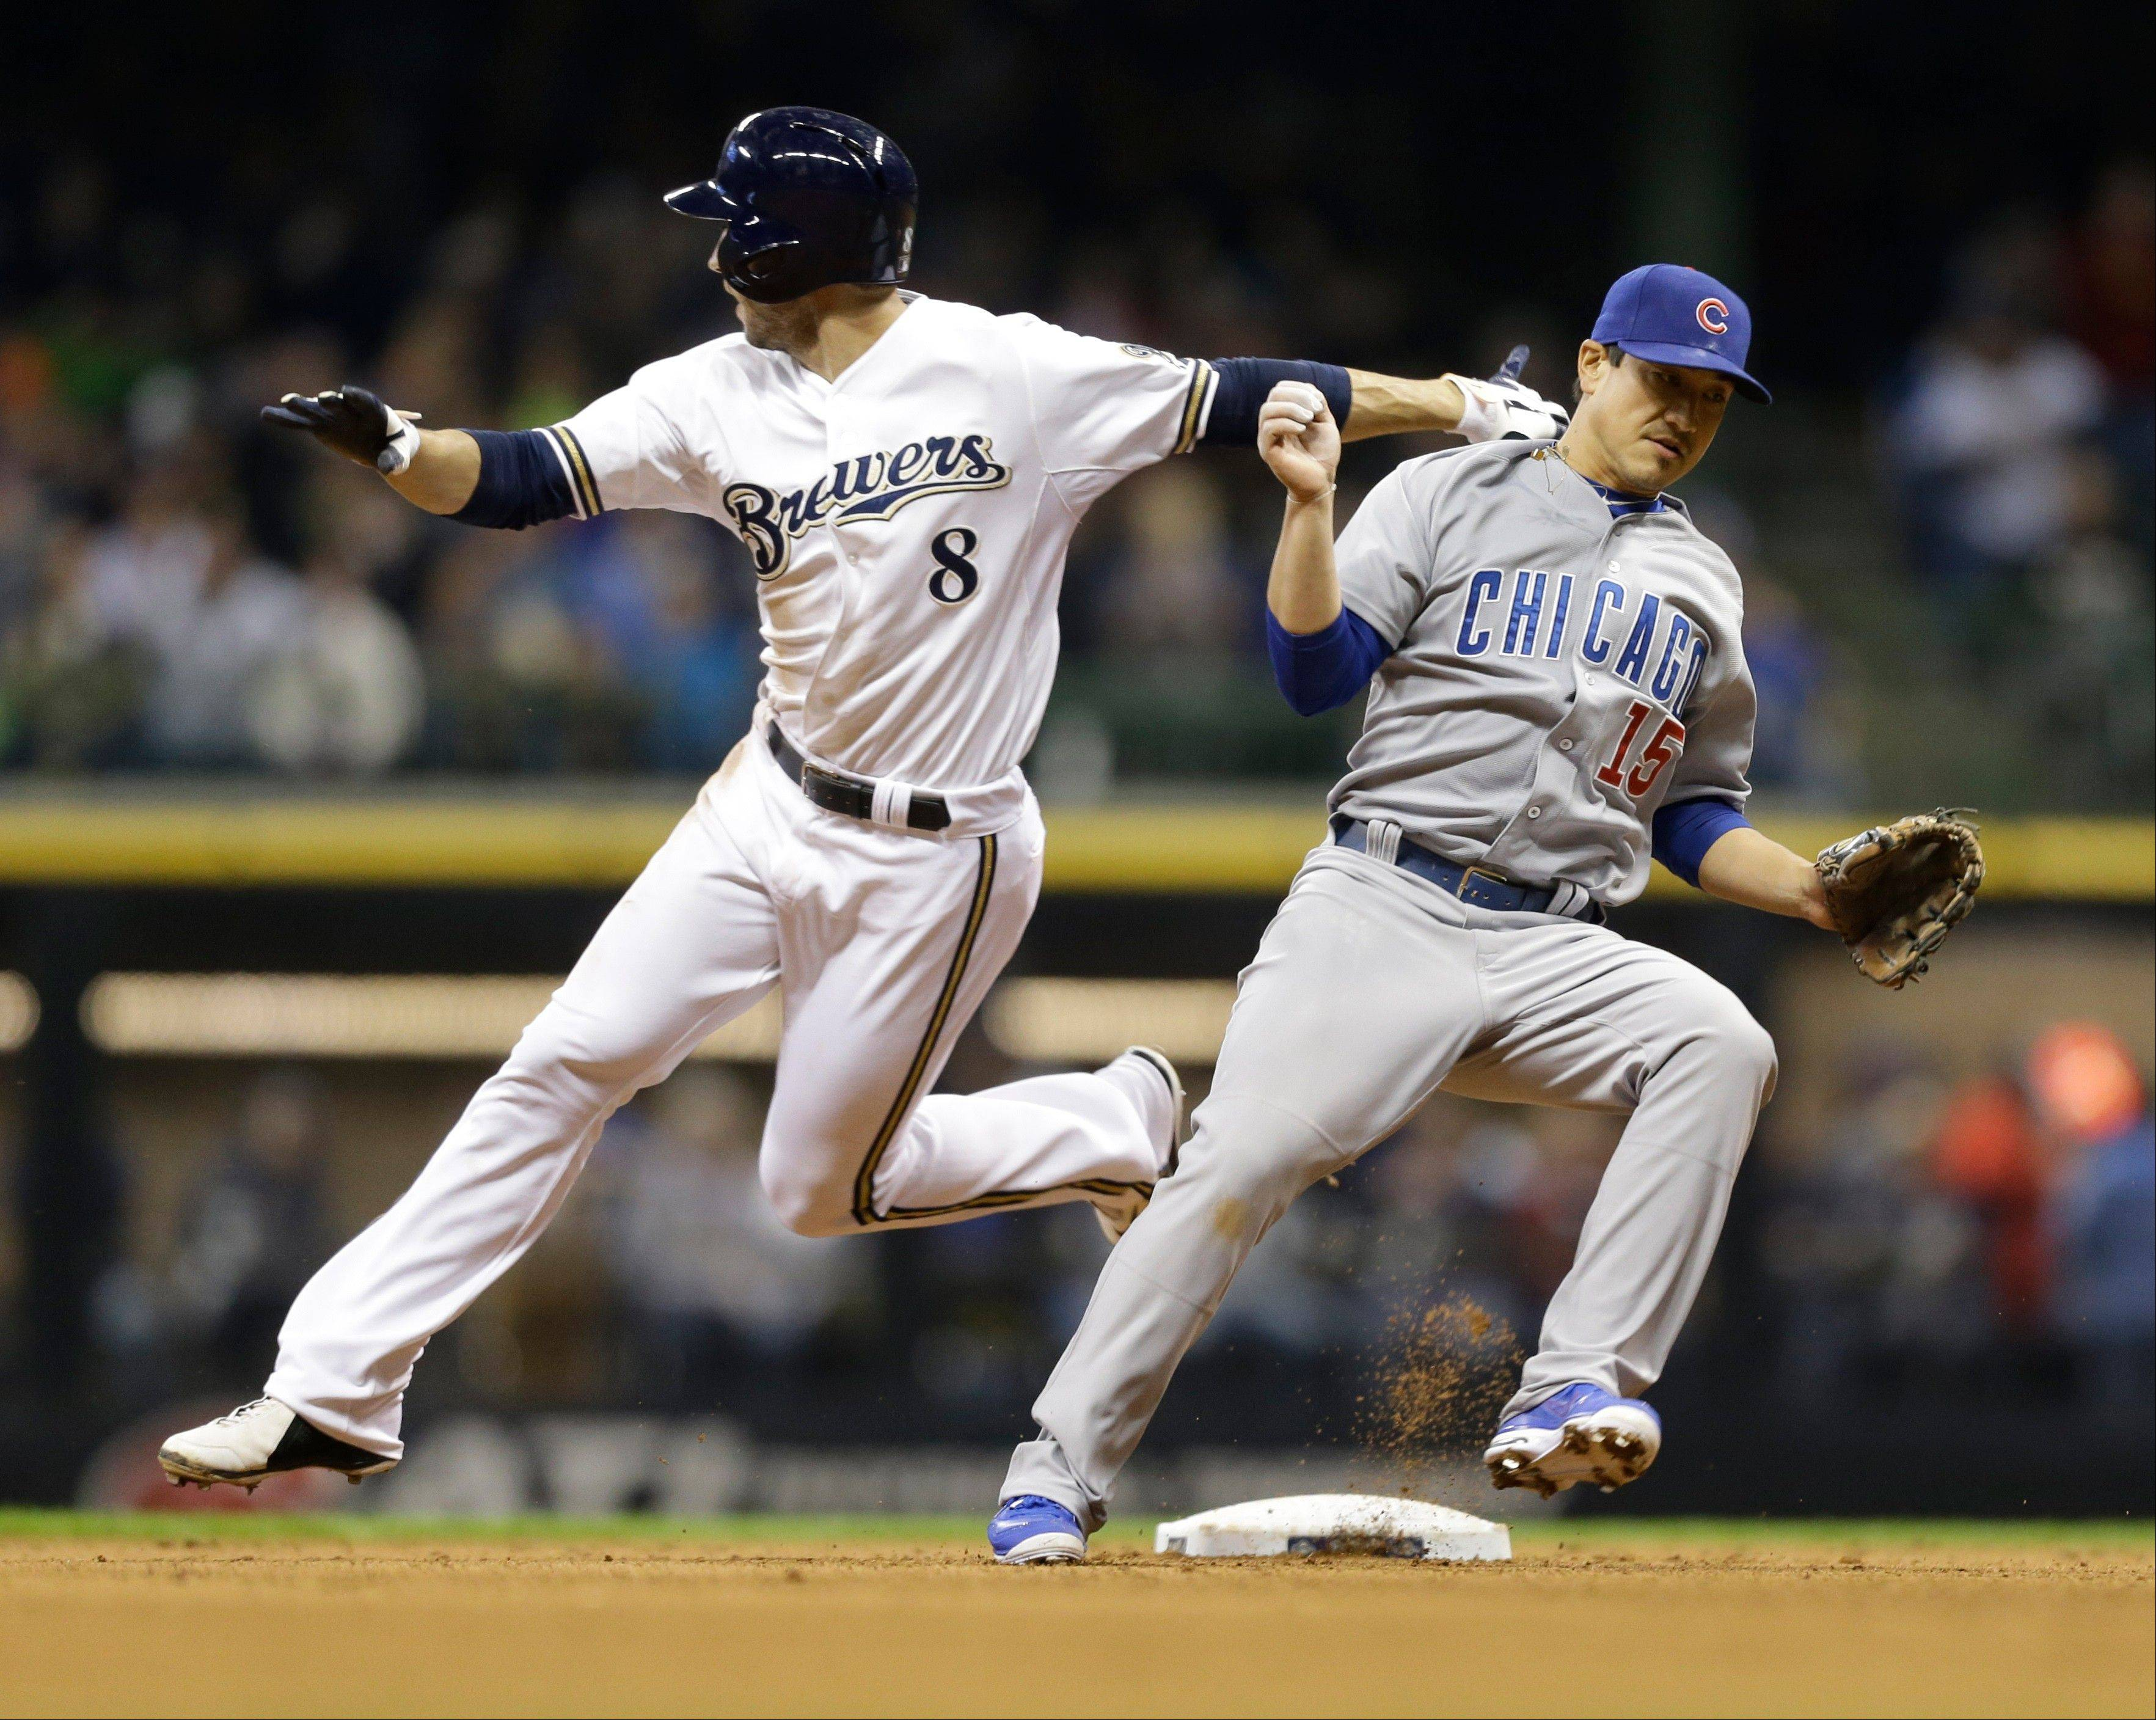 Chicago Cubs' Darwin Barney (15) moves out of the way as Milwaukee Brewers' Ryan Braun (8) rounds second base after a throwing error by Cubs starting pitcher Edwin Jackson during the 6th inning Saturday.